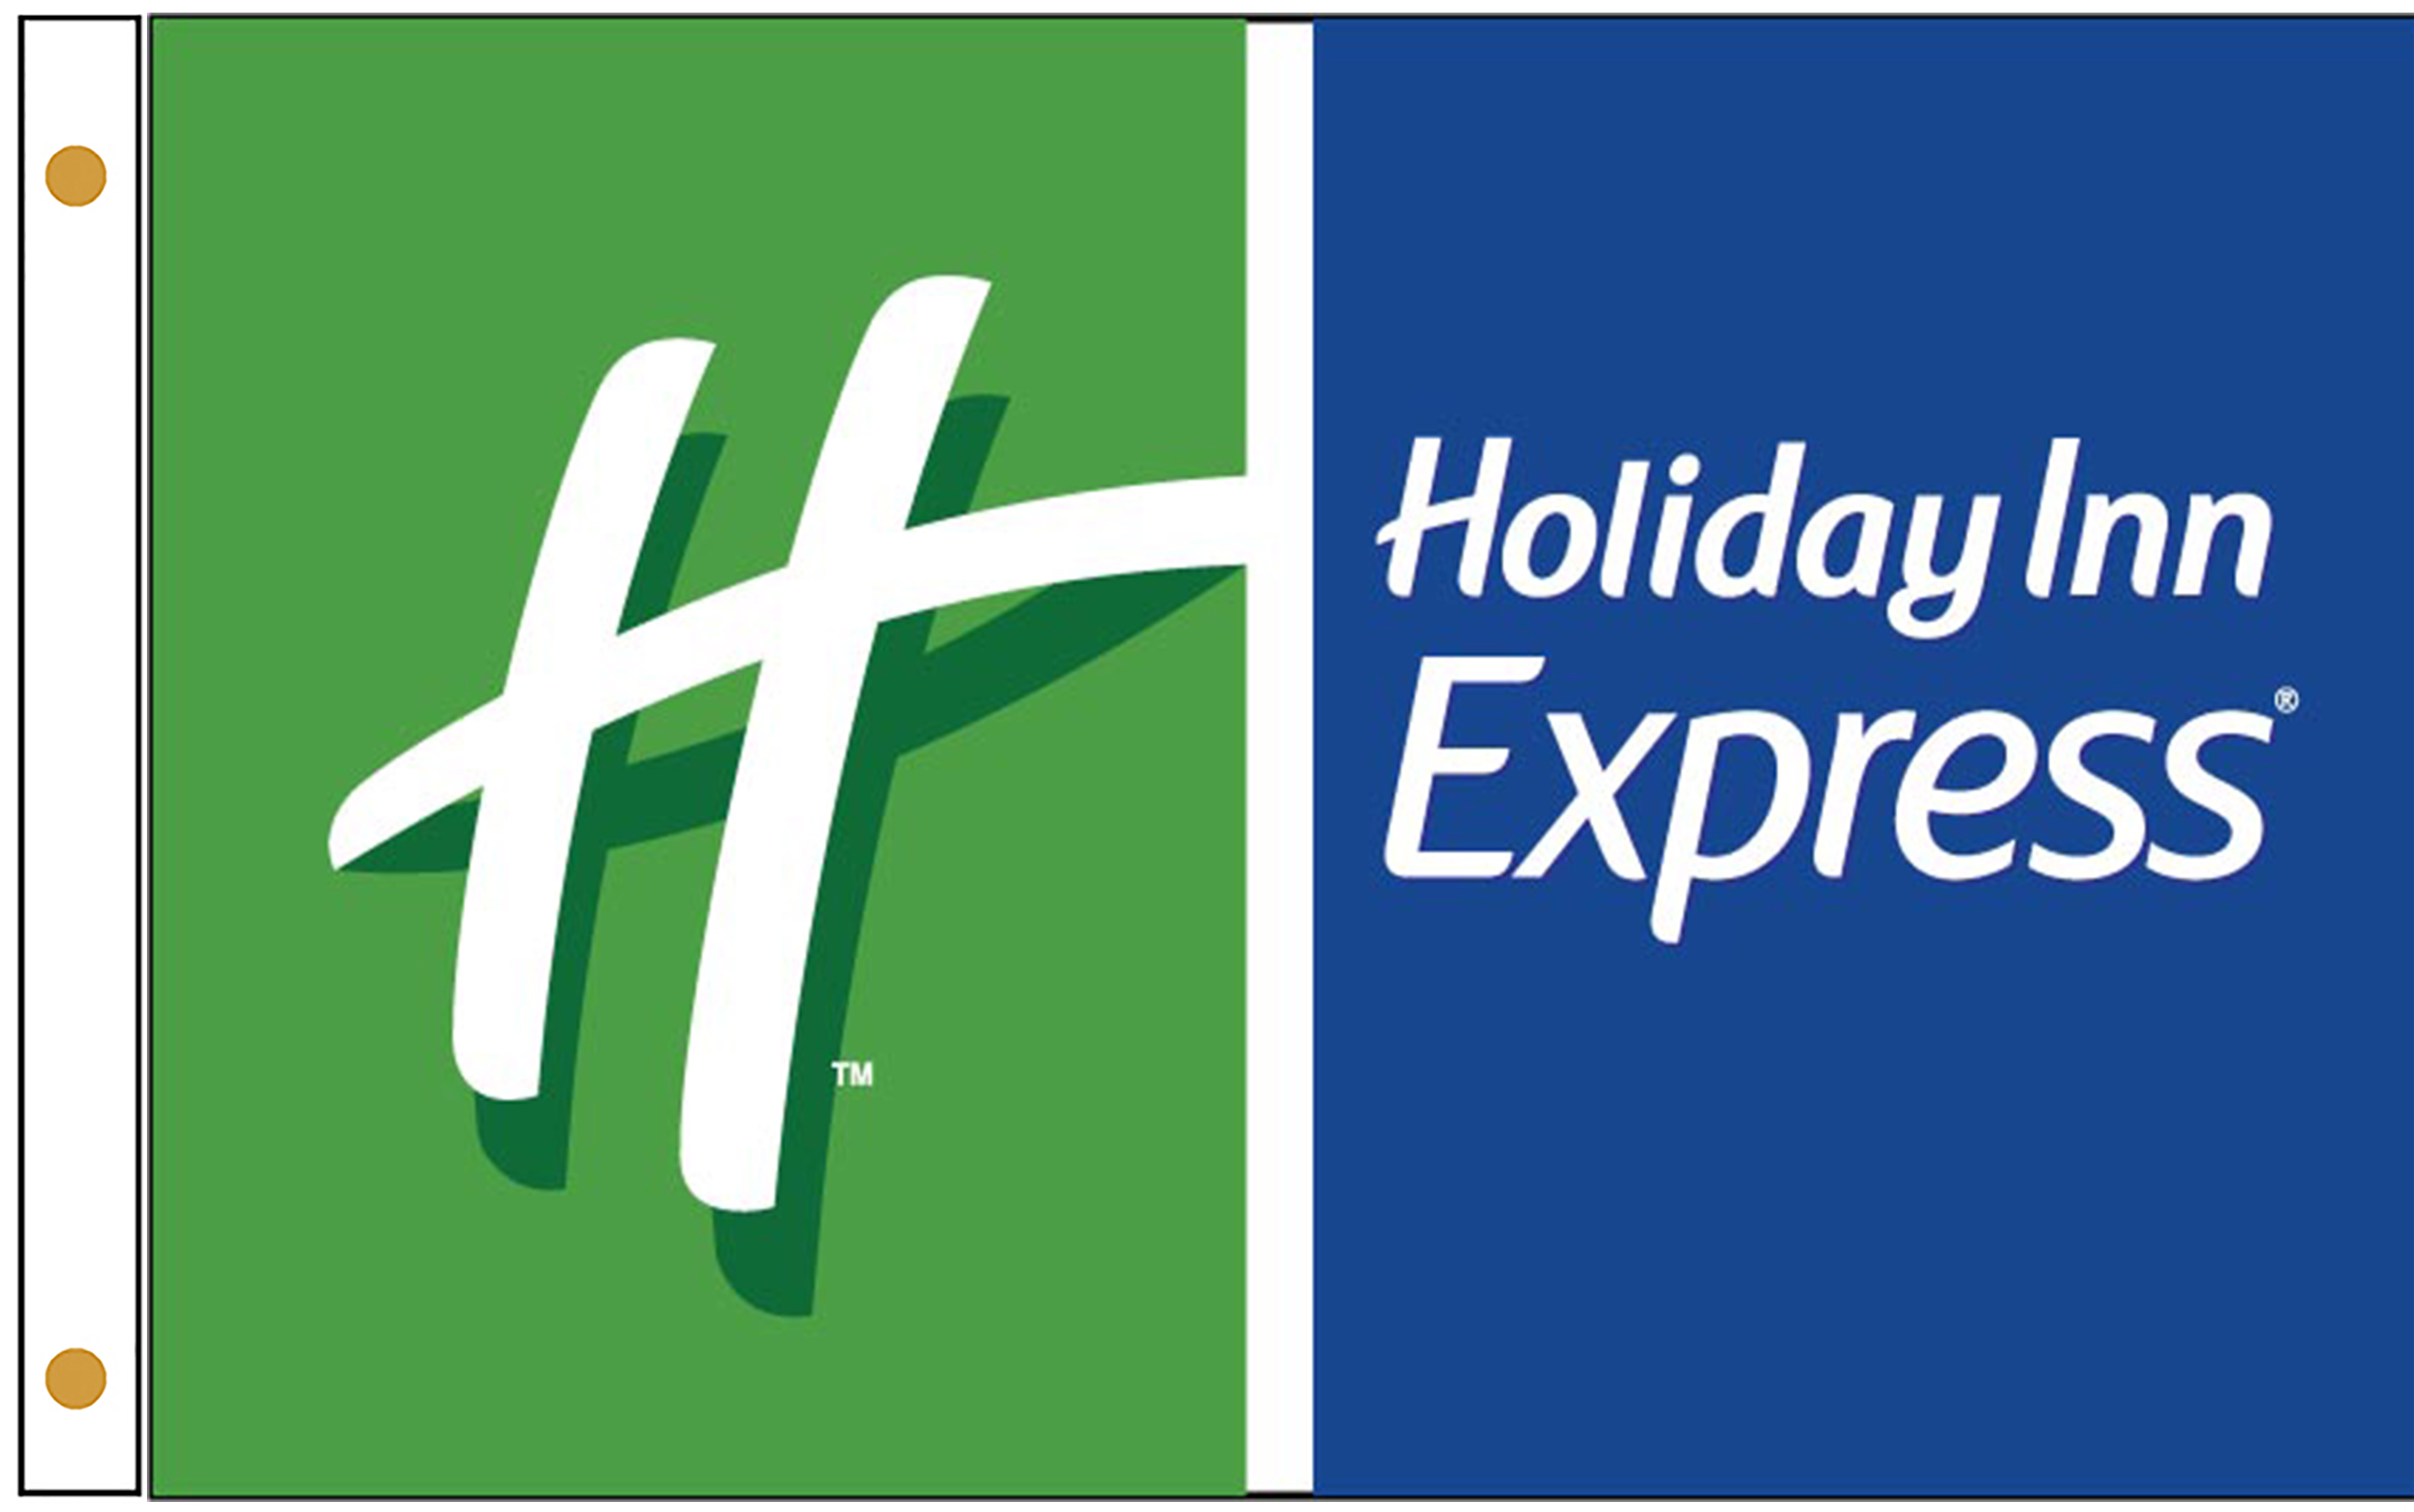 Holiday Inn Express Hotel Flags